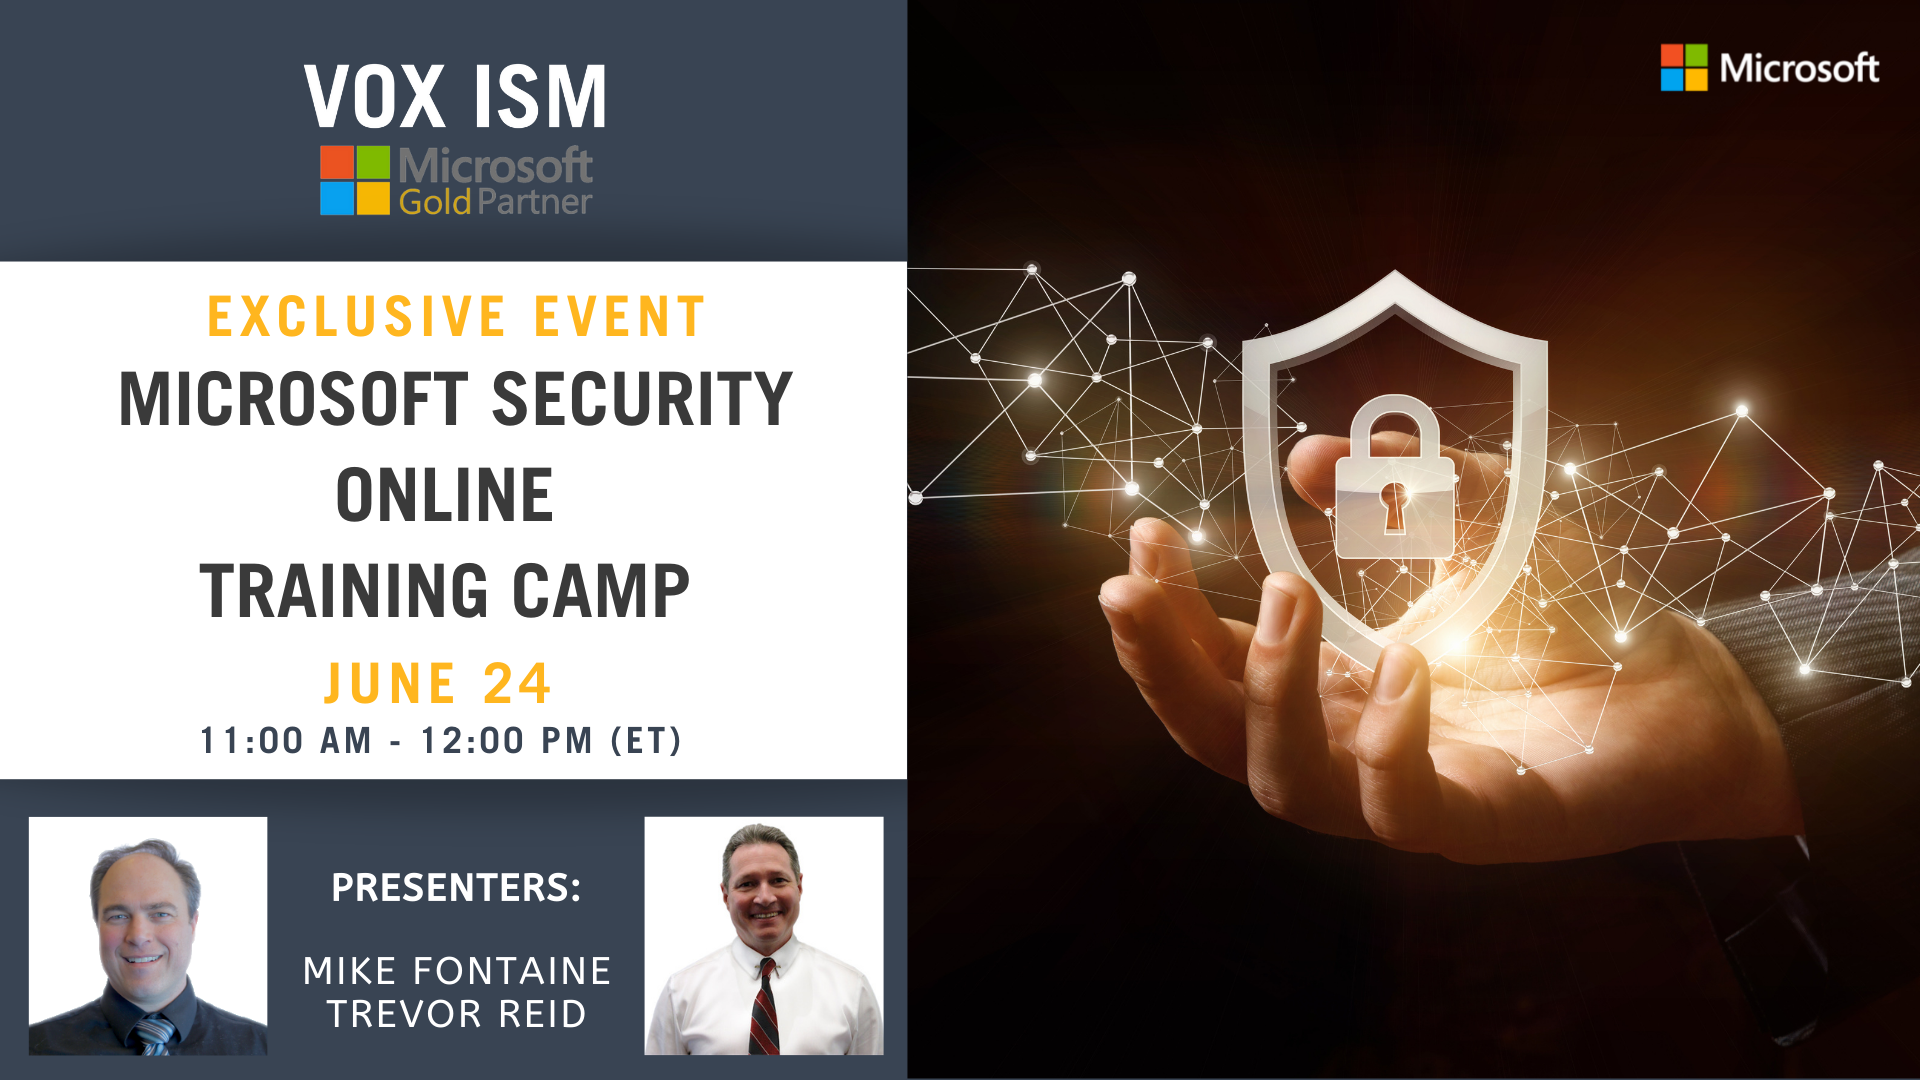 Microsoft Security Online Training Camp - July 24